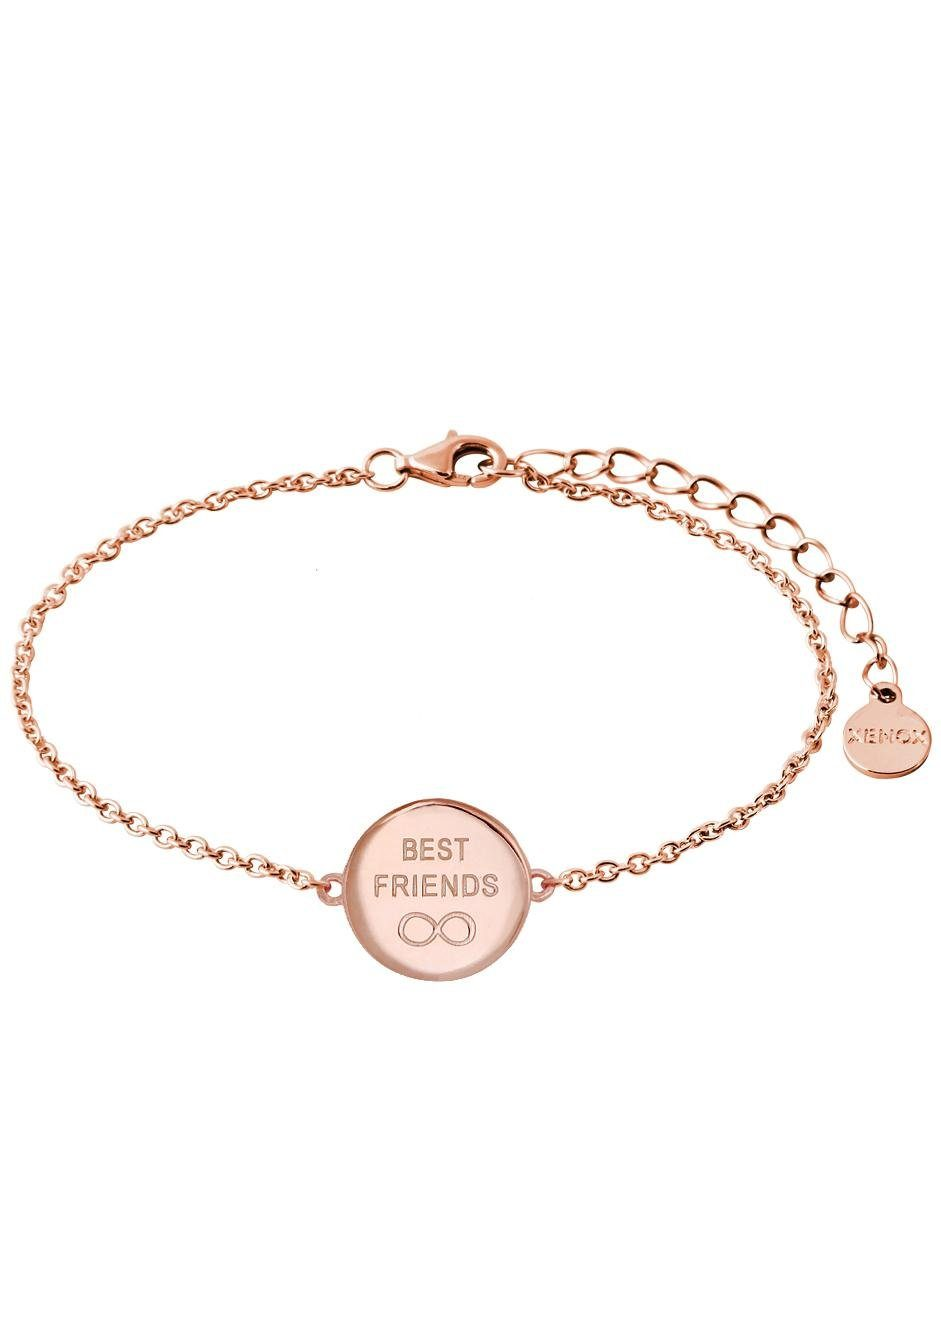 XENOX Armband »BEST FRIENDS, Love Letters, XS3711R«